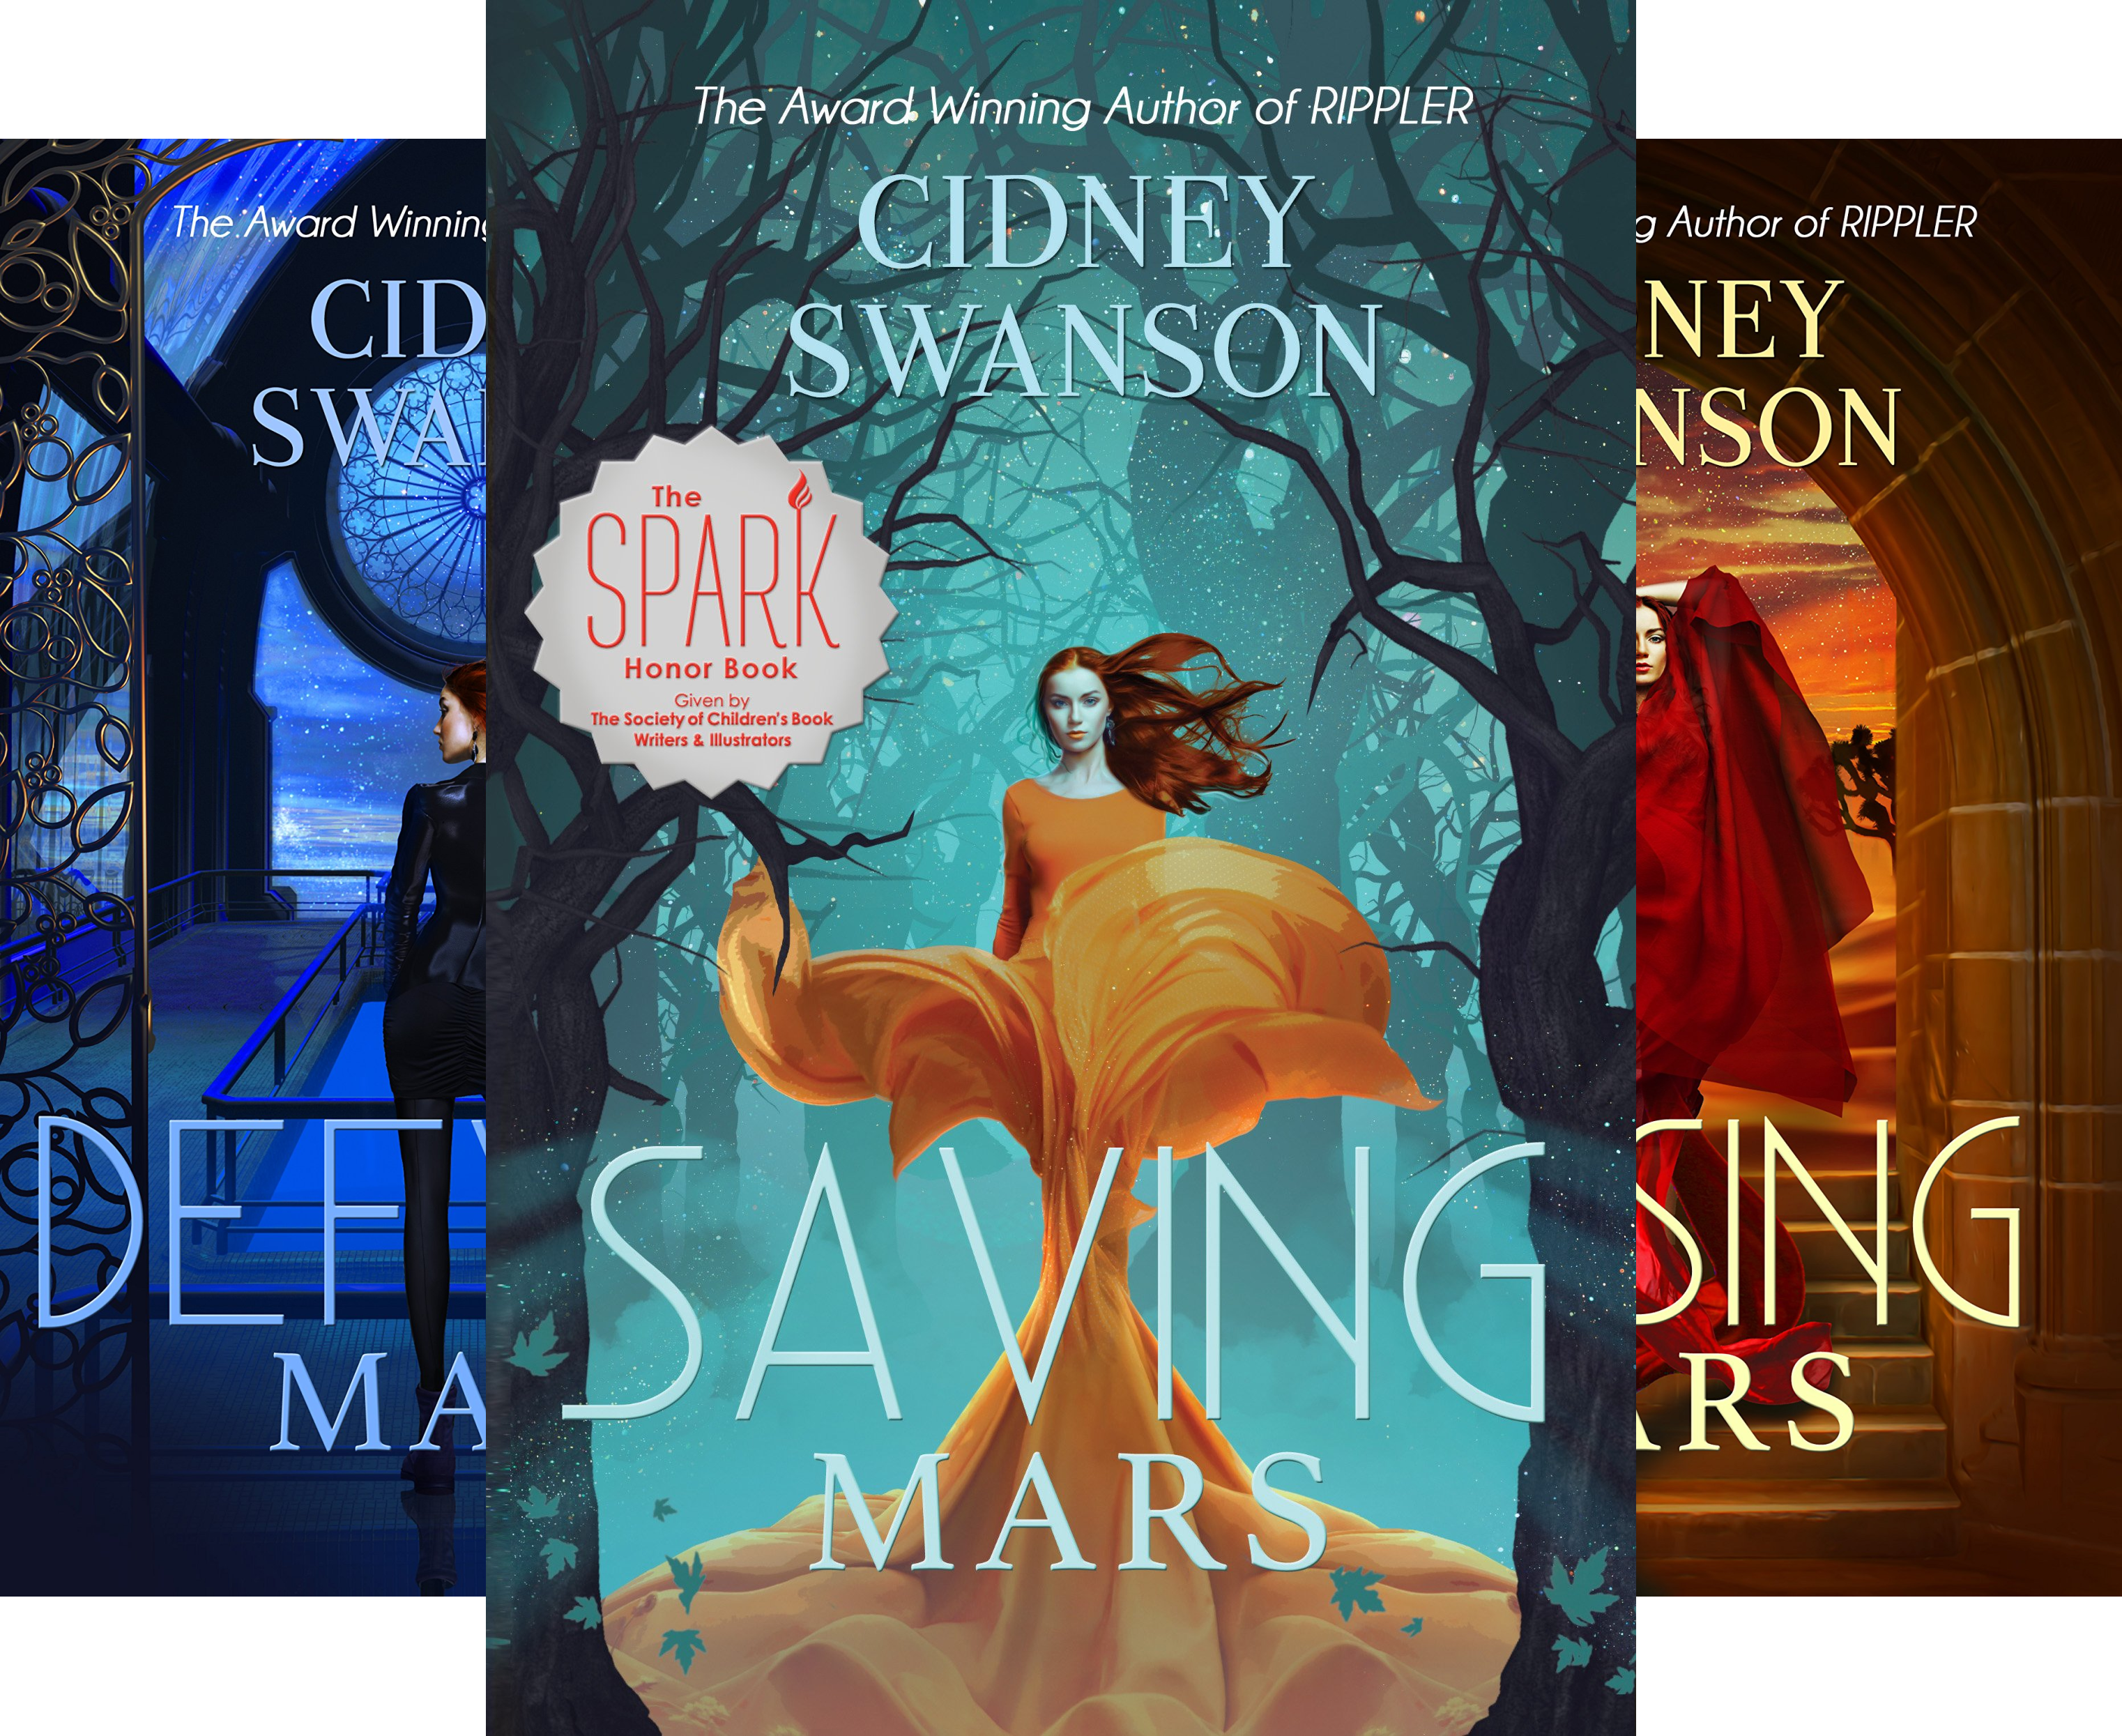 Sci-Fi & Crime Thriller Series In Today's KindleDailyDeal